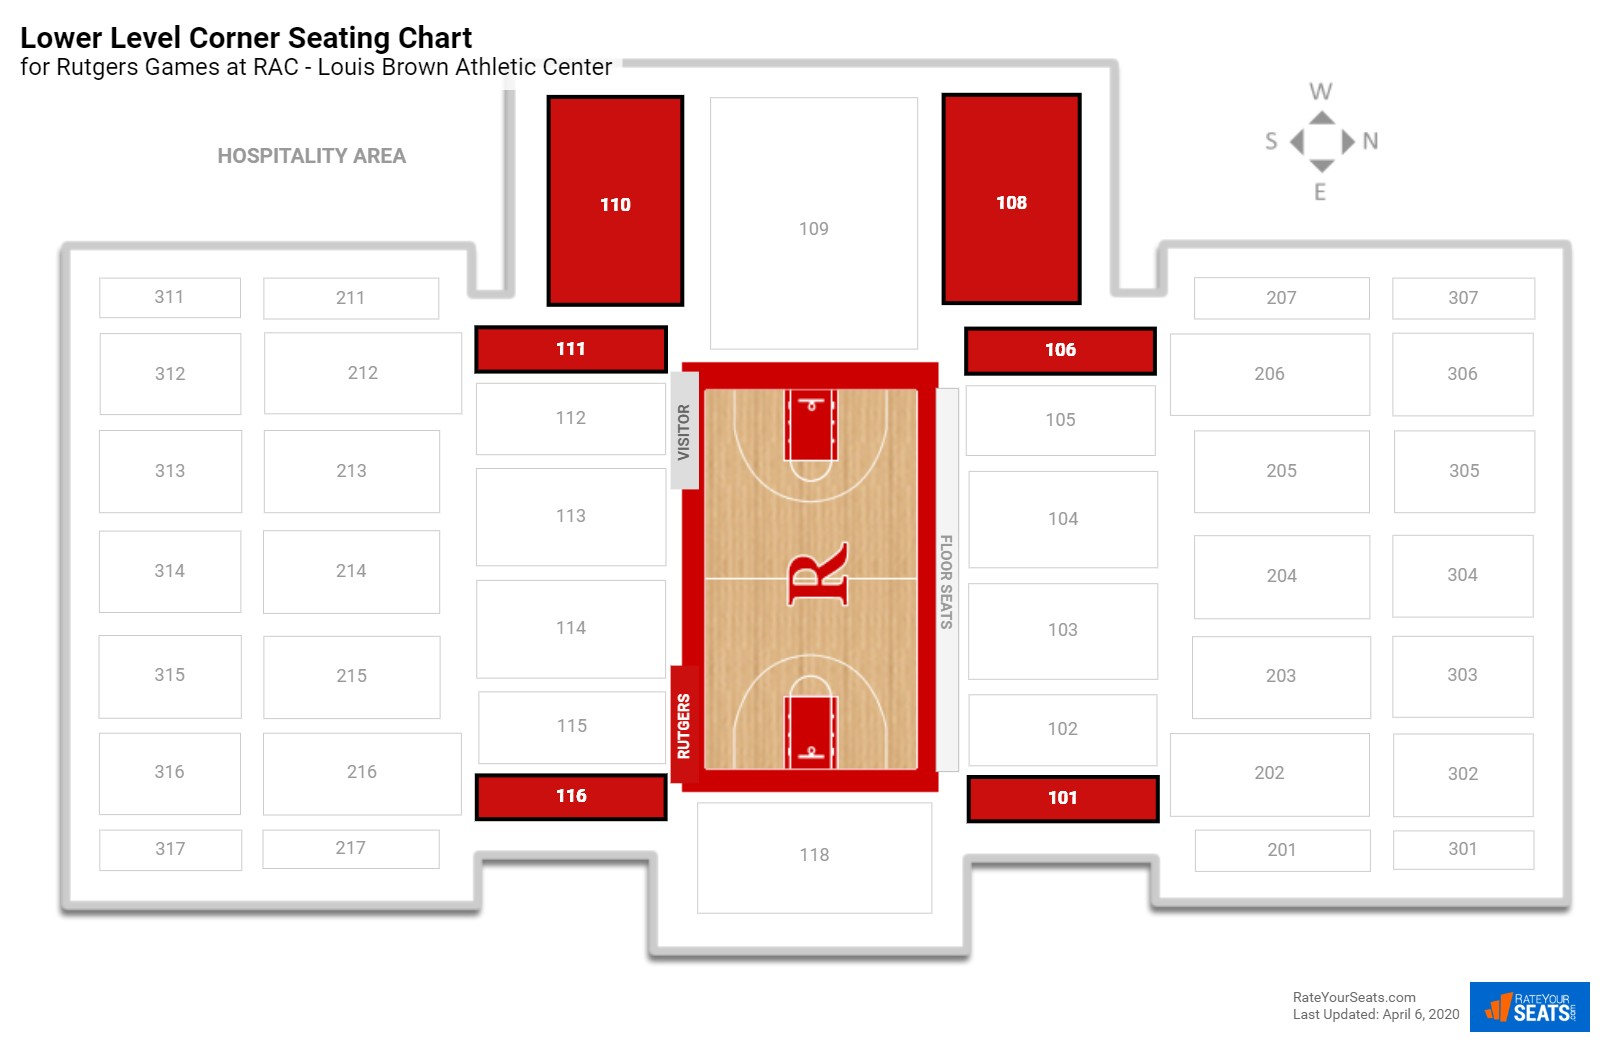 Rac Louis Brown Athletic Center Rutgers Seating Guide